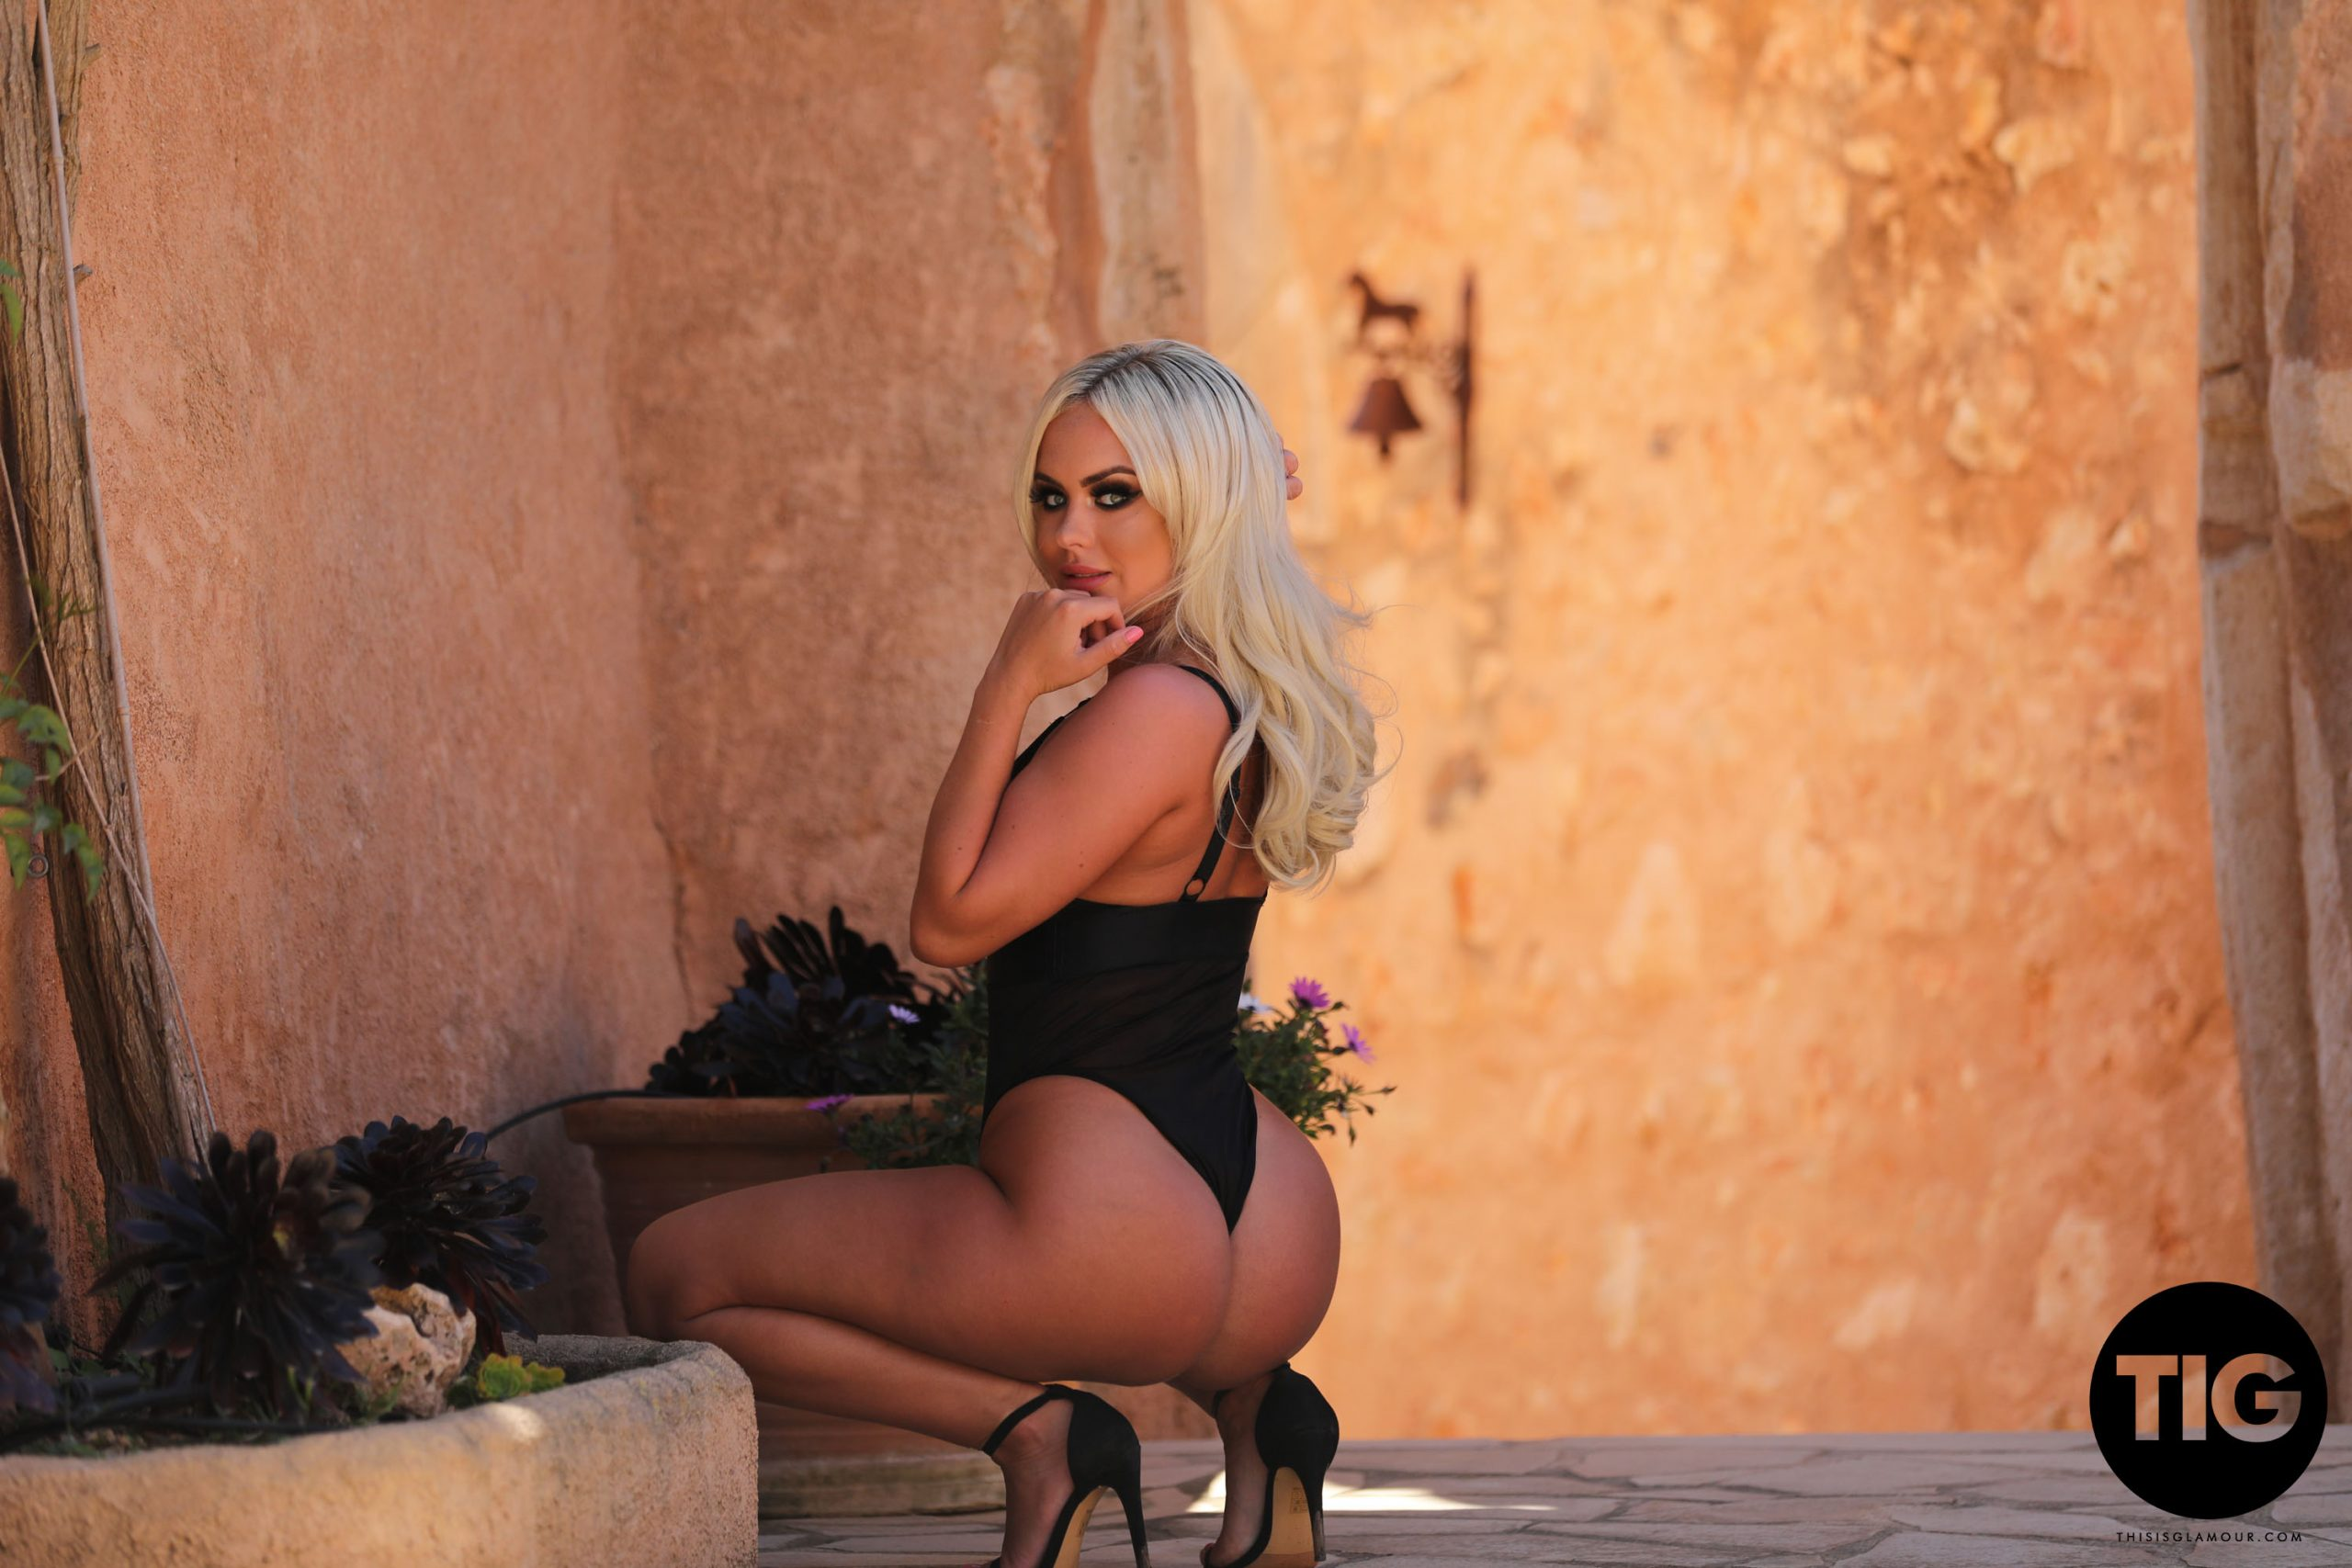 Sara h Lou Big Tit Blonde in Black Swimsuit and High Heels